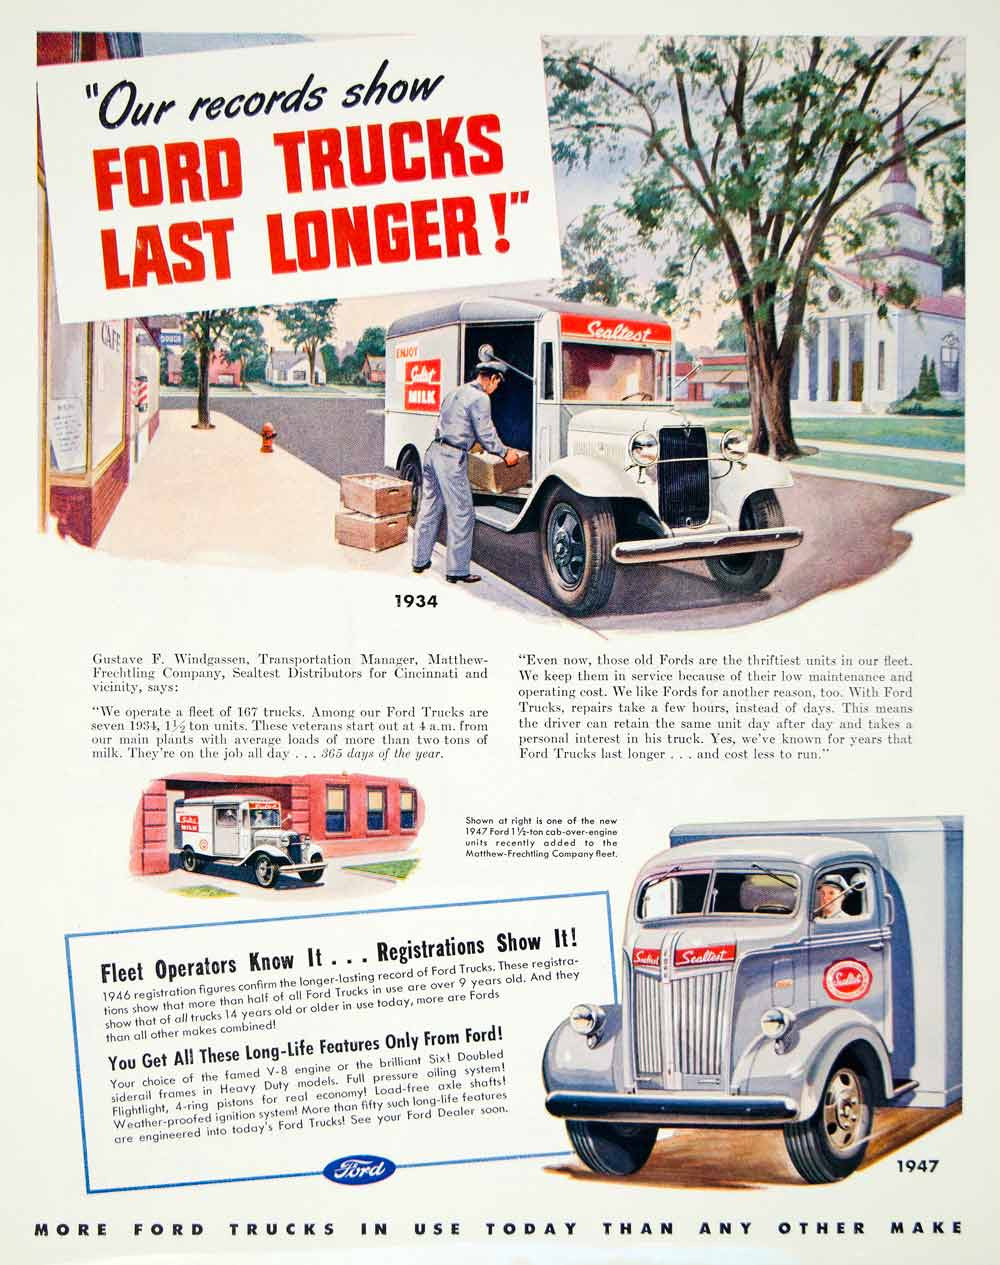 Trucks Page 9 Period Paper 1948 Ford Semi Truck 1947 Ad Motor Company Sealtest Milk Car Automobile Vehicle Yft3